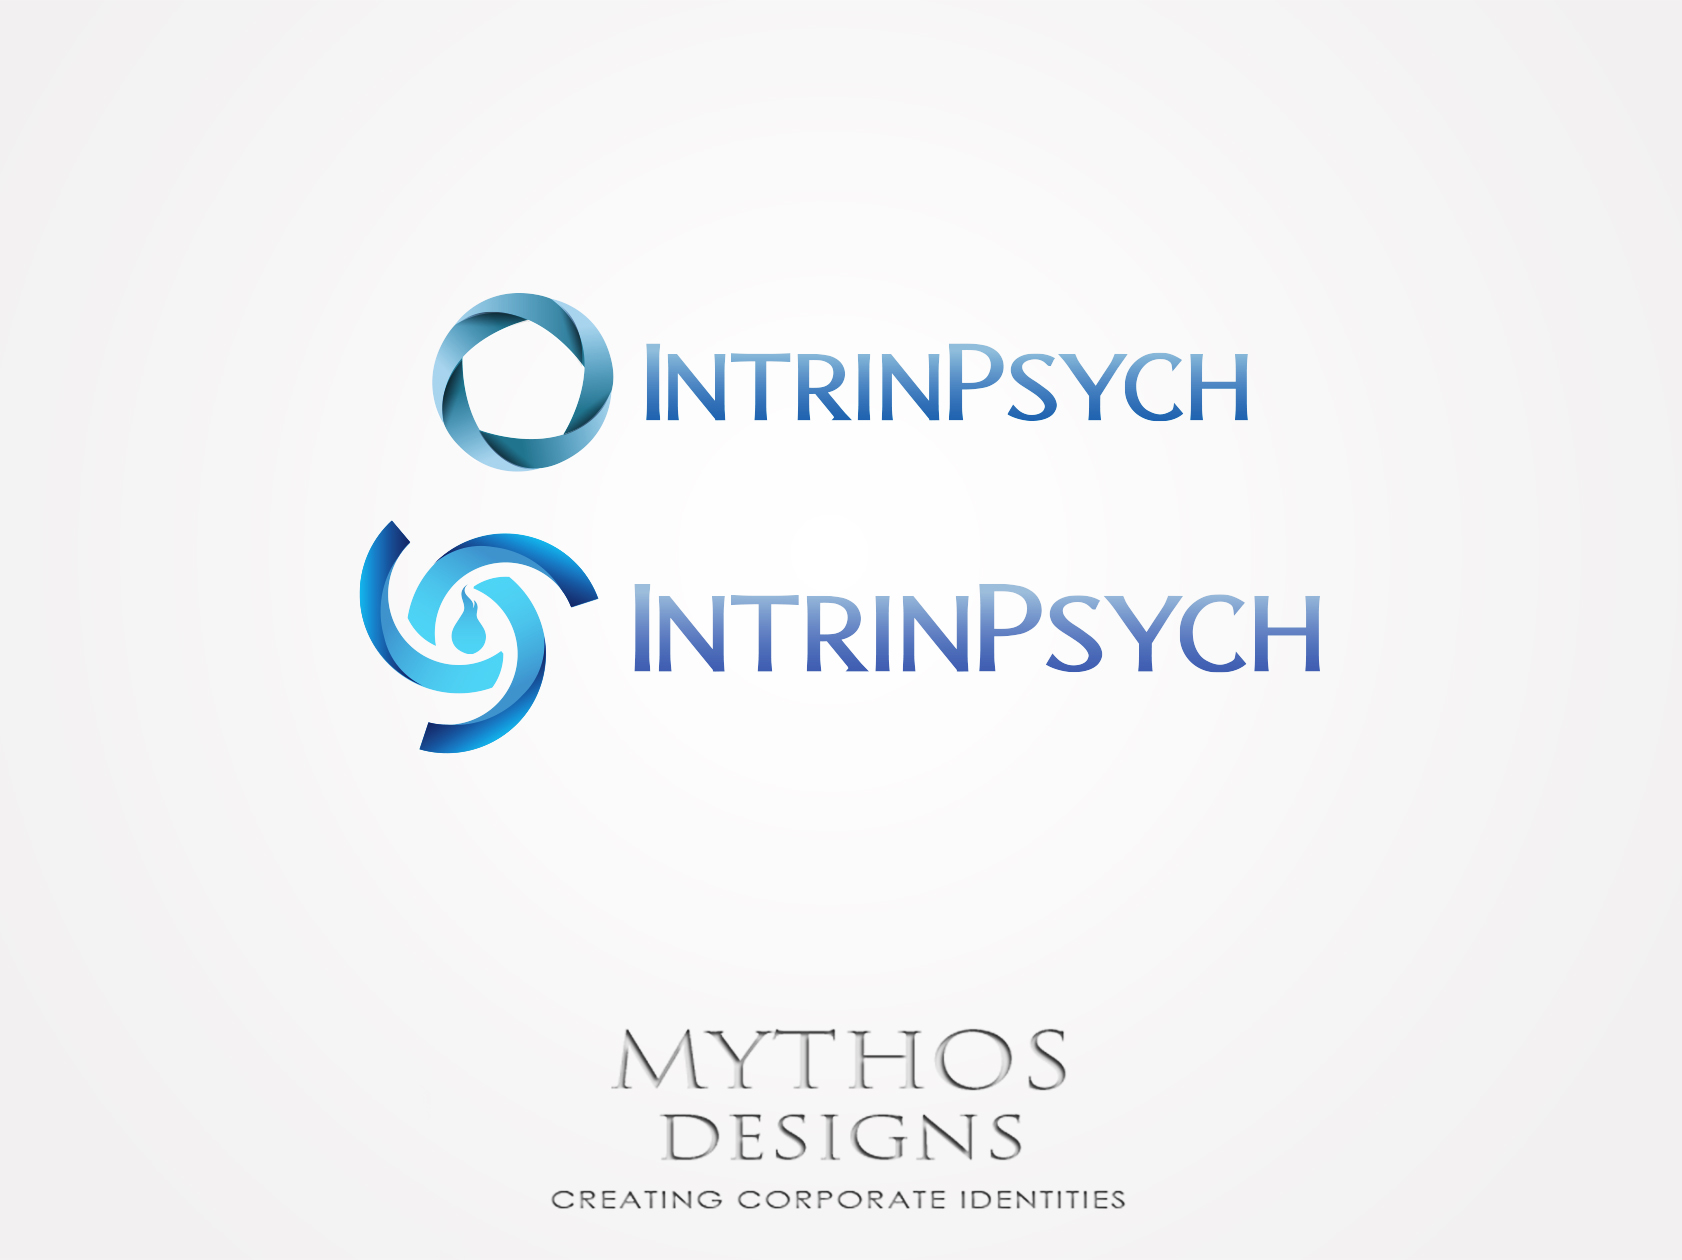 Logo Design by Mythos Designs - Entry No. 202 in the Logo Design Contest New Logo Design for IntrinPsych.